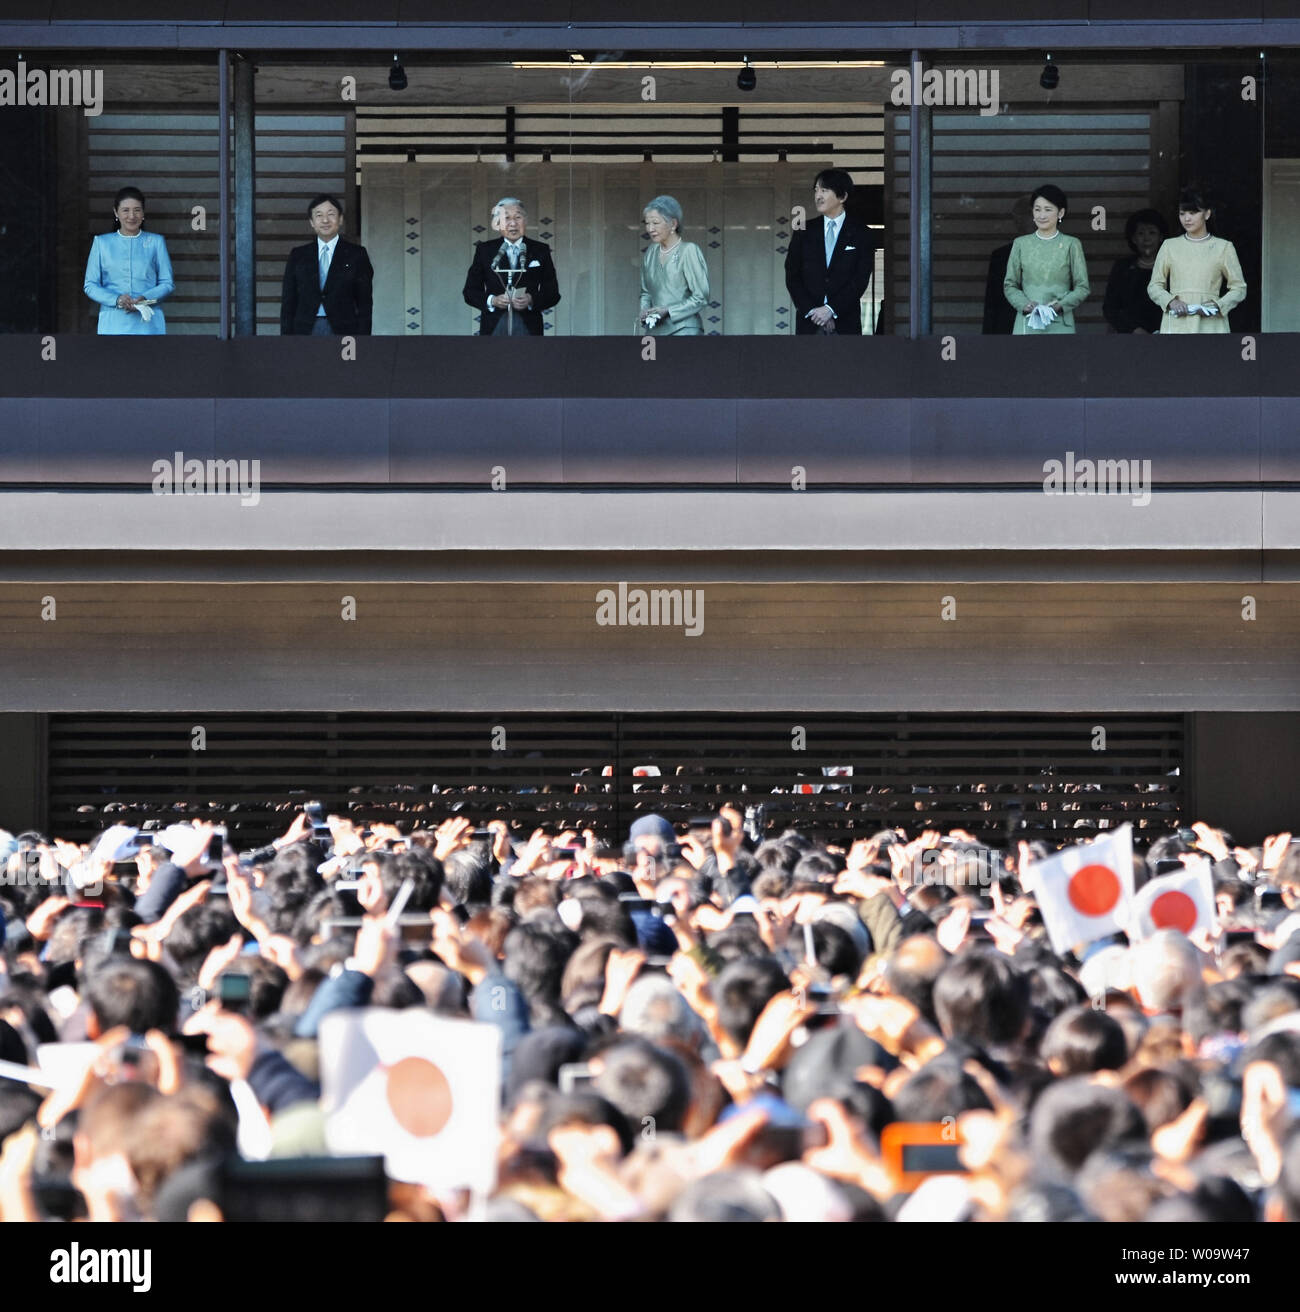 Japan's Emperor Akihito(L3) speaks to well-wishers from a balcony during a new year greeting at the East Plaza, Imperial Palace in Tokyo, Japan, on January 2, 2014.      UPI/Keizo Mori - Stock Image